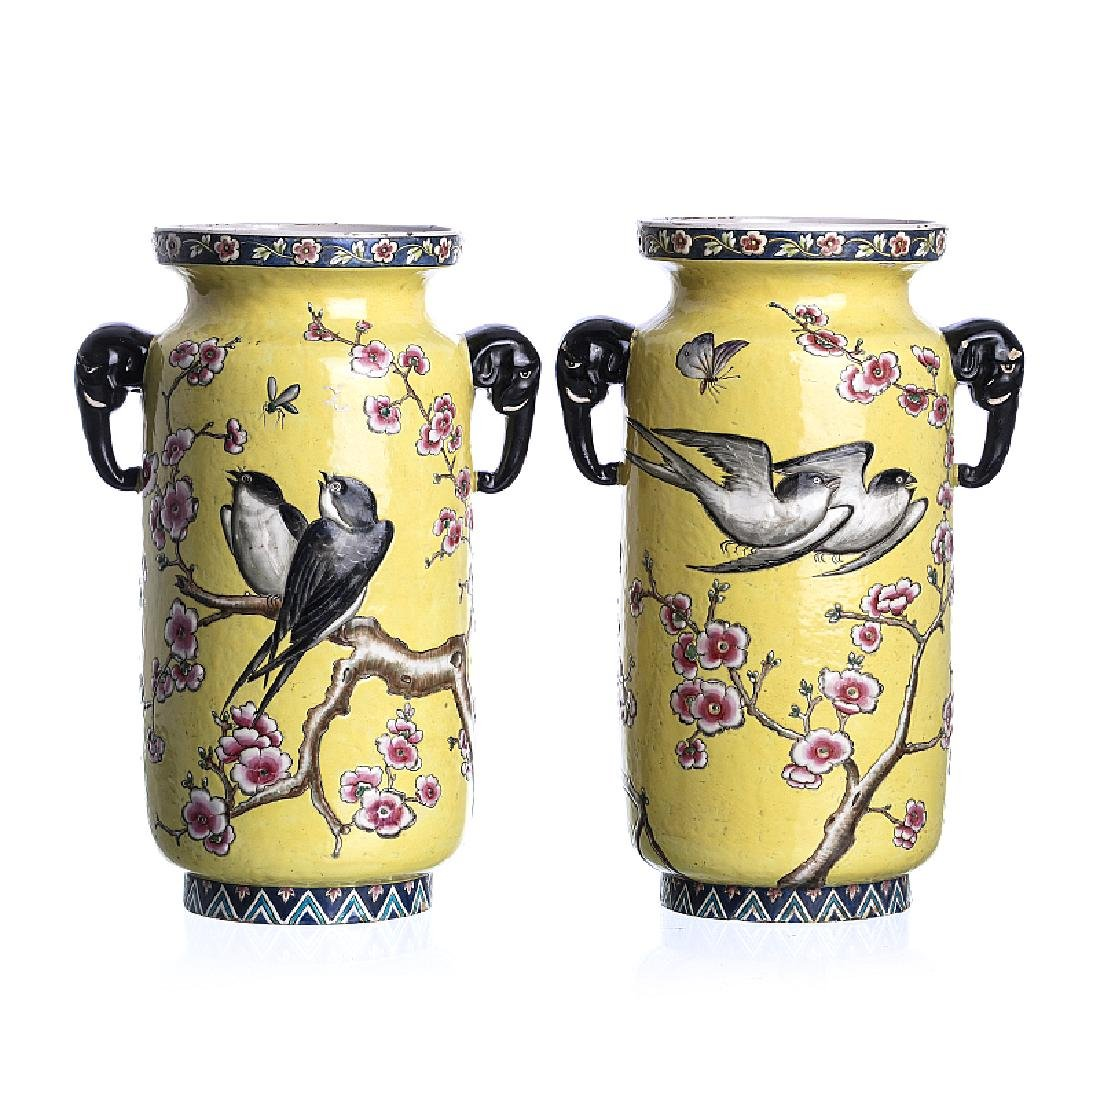 Pair of vases 'birds among flowers'